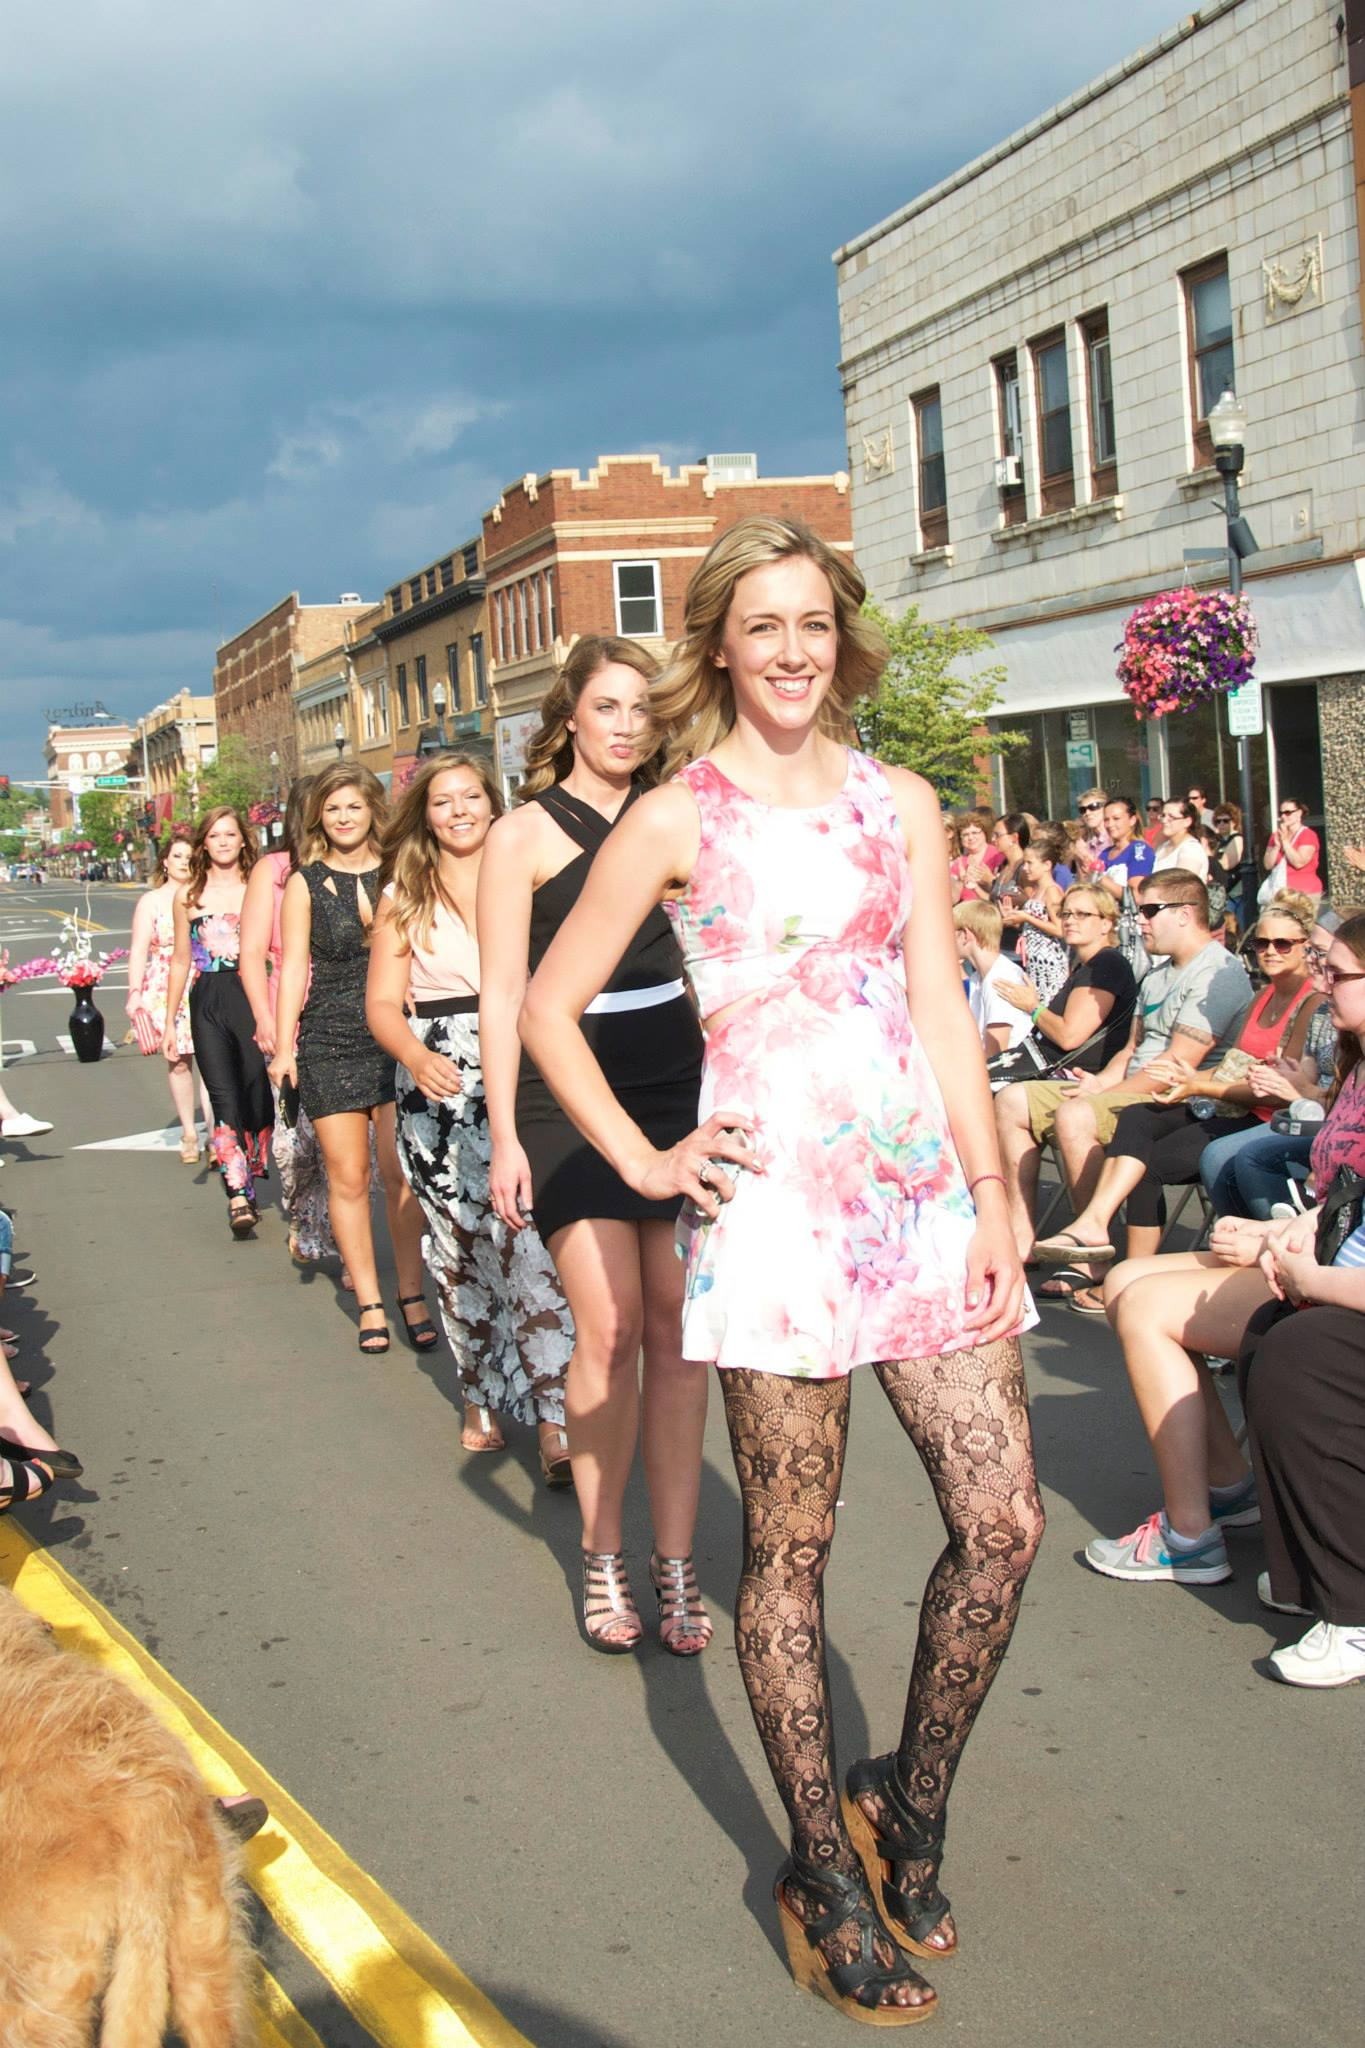 Nina Brooke Pleshe leads the lineup at the fashion show her shop Nina Brooke sponsored during Sidewalk Days in downtown Hibbing this summer. (PHOTO: Nina Brooke FB page)